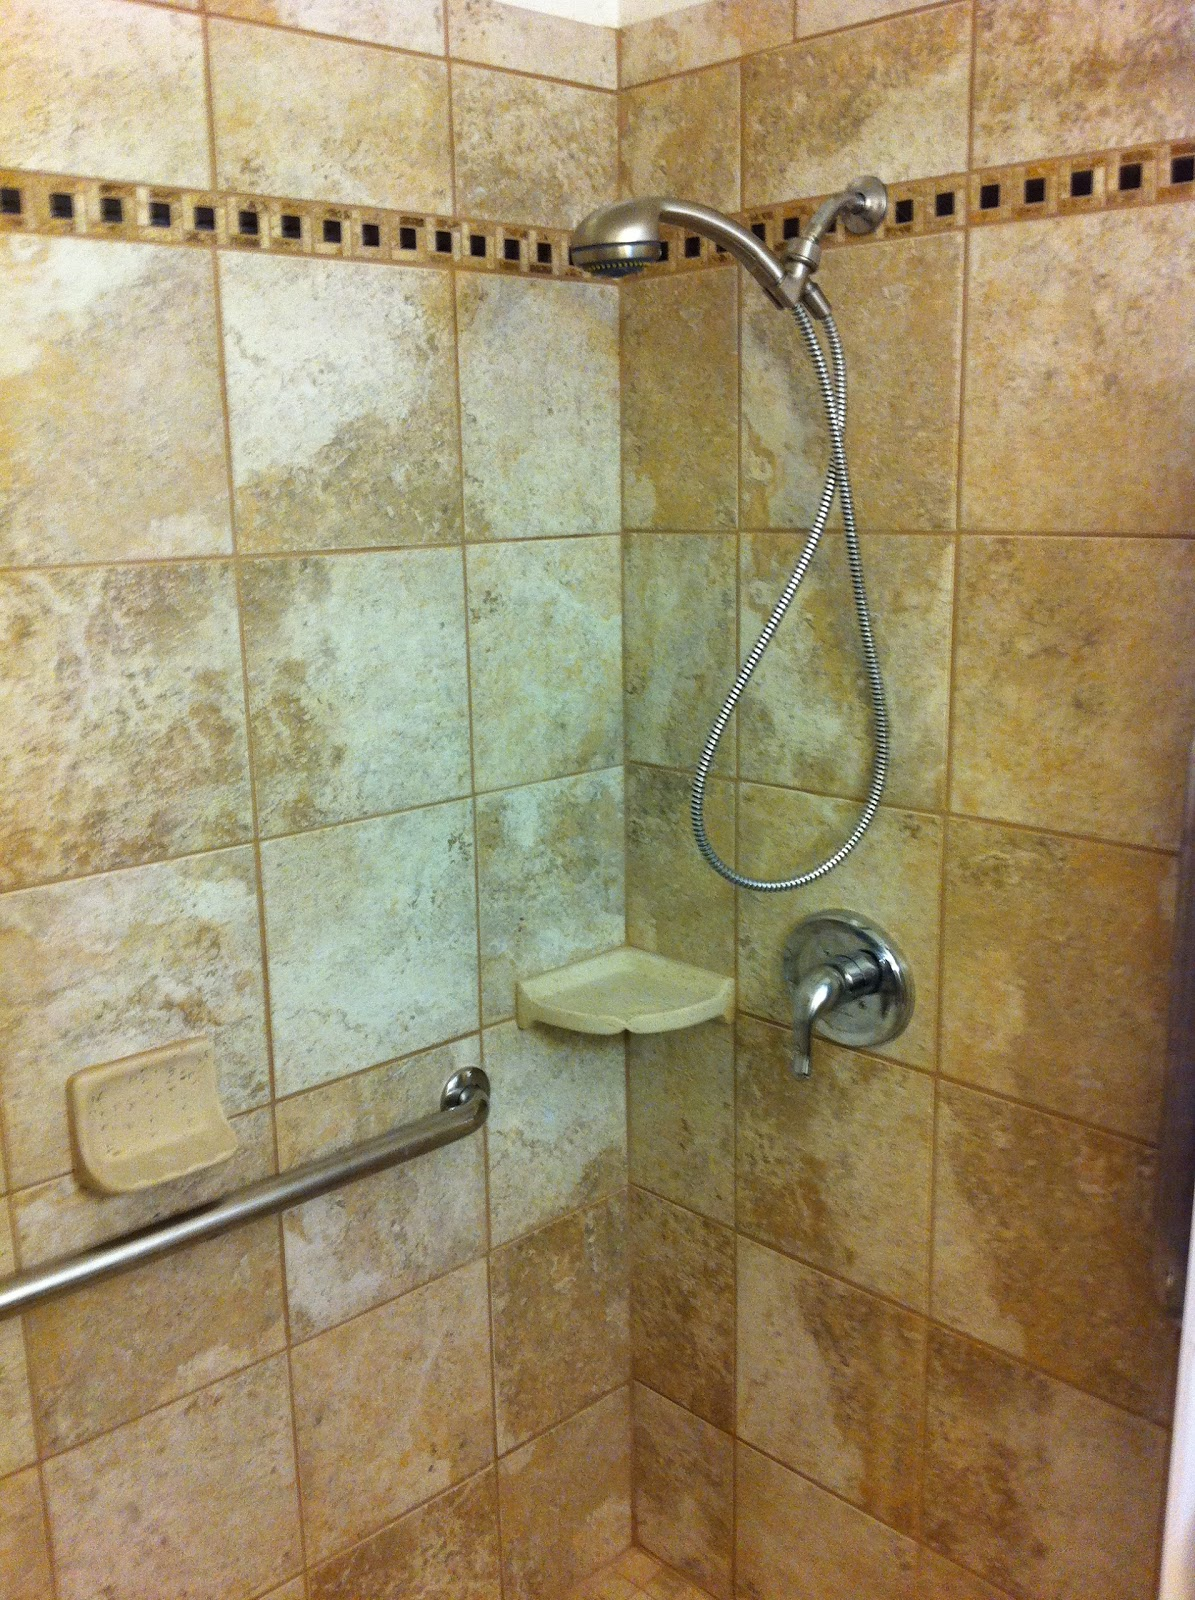 Lapham Construction: Bathroom Remodel With Custom Shower